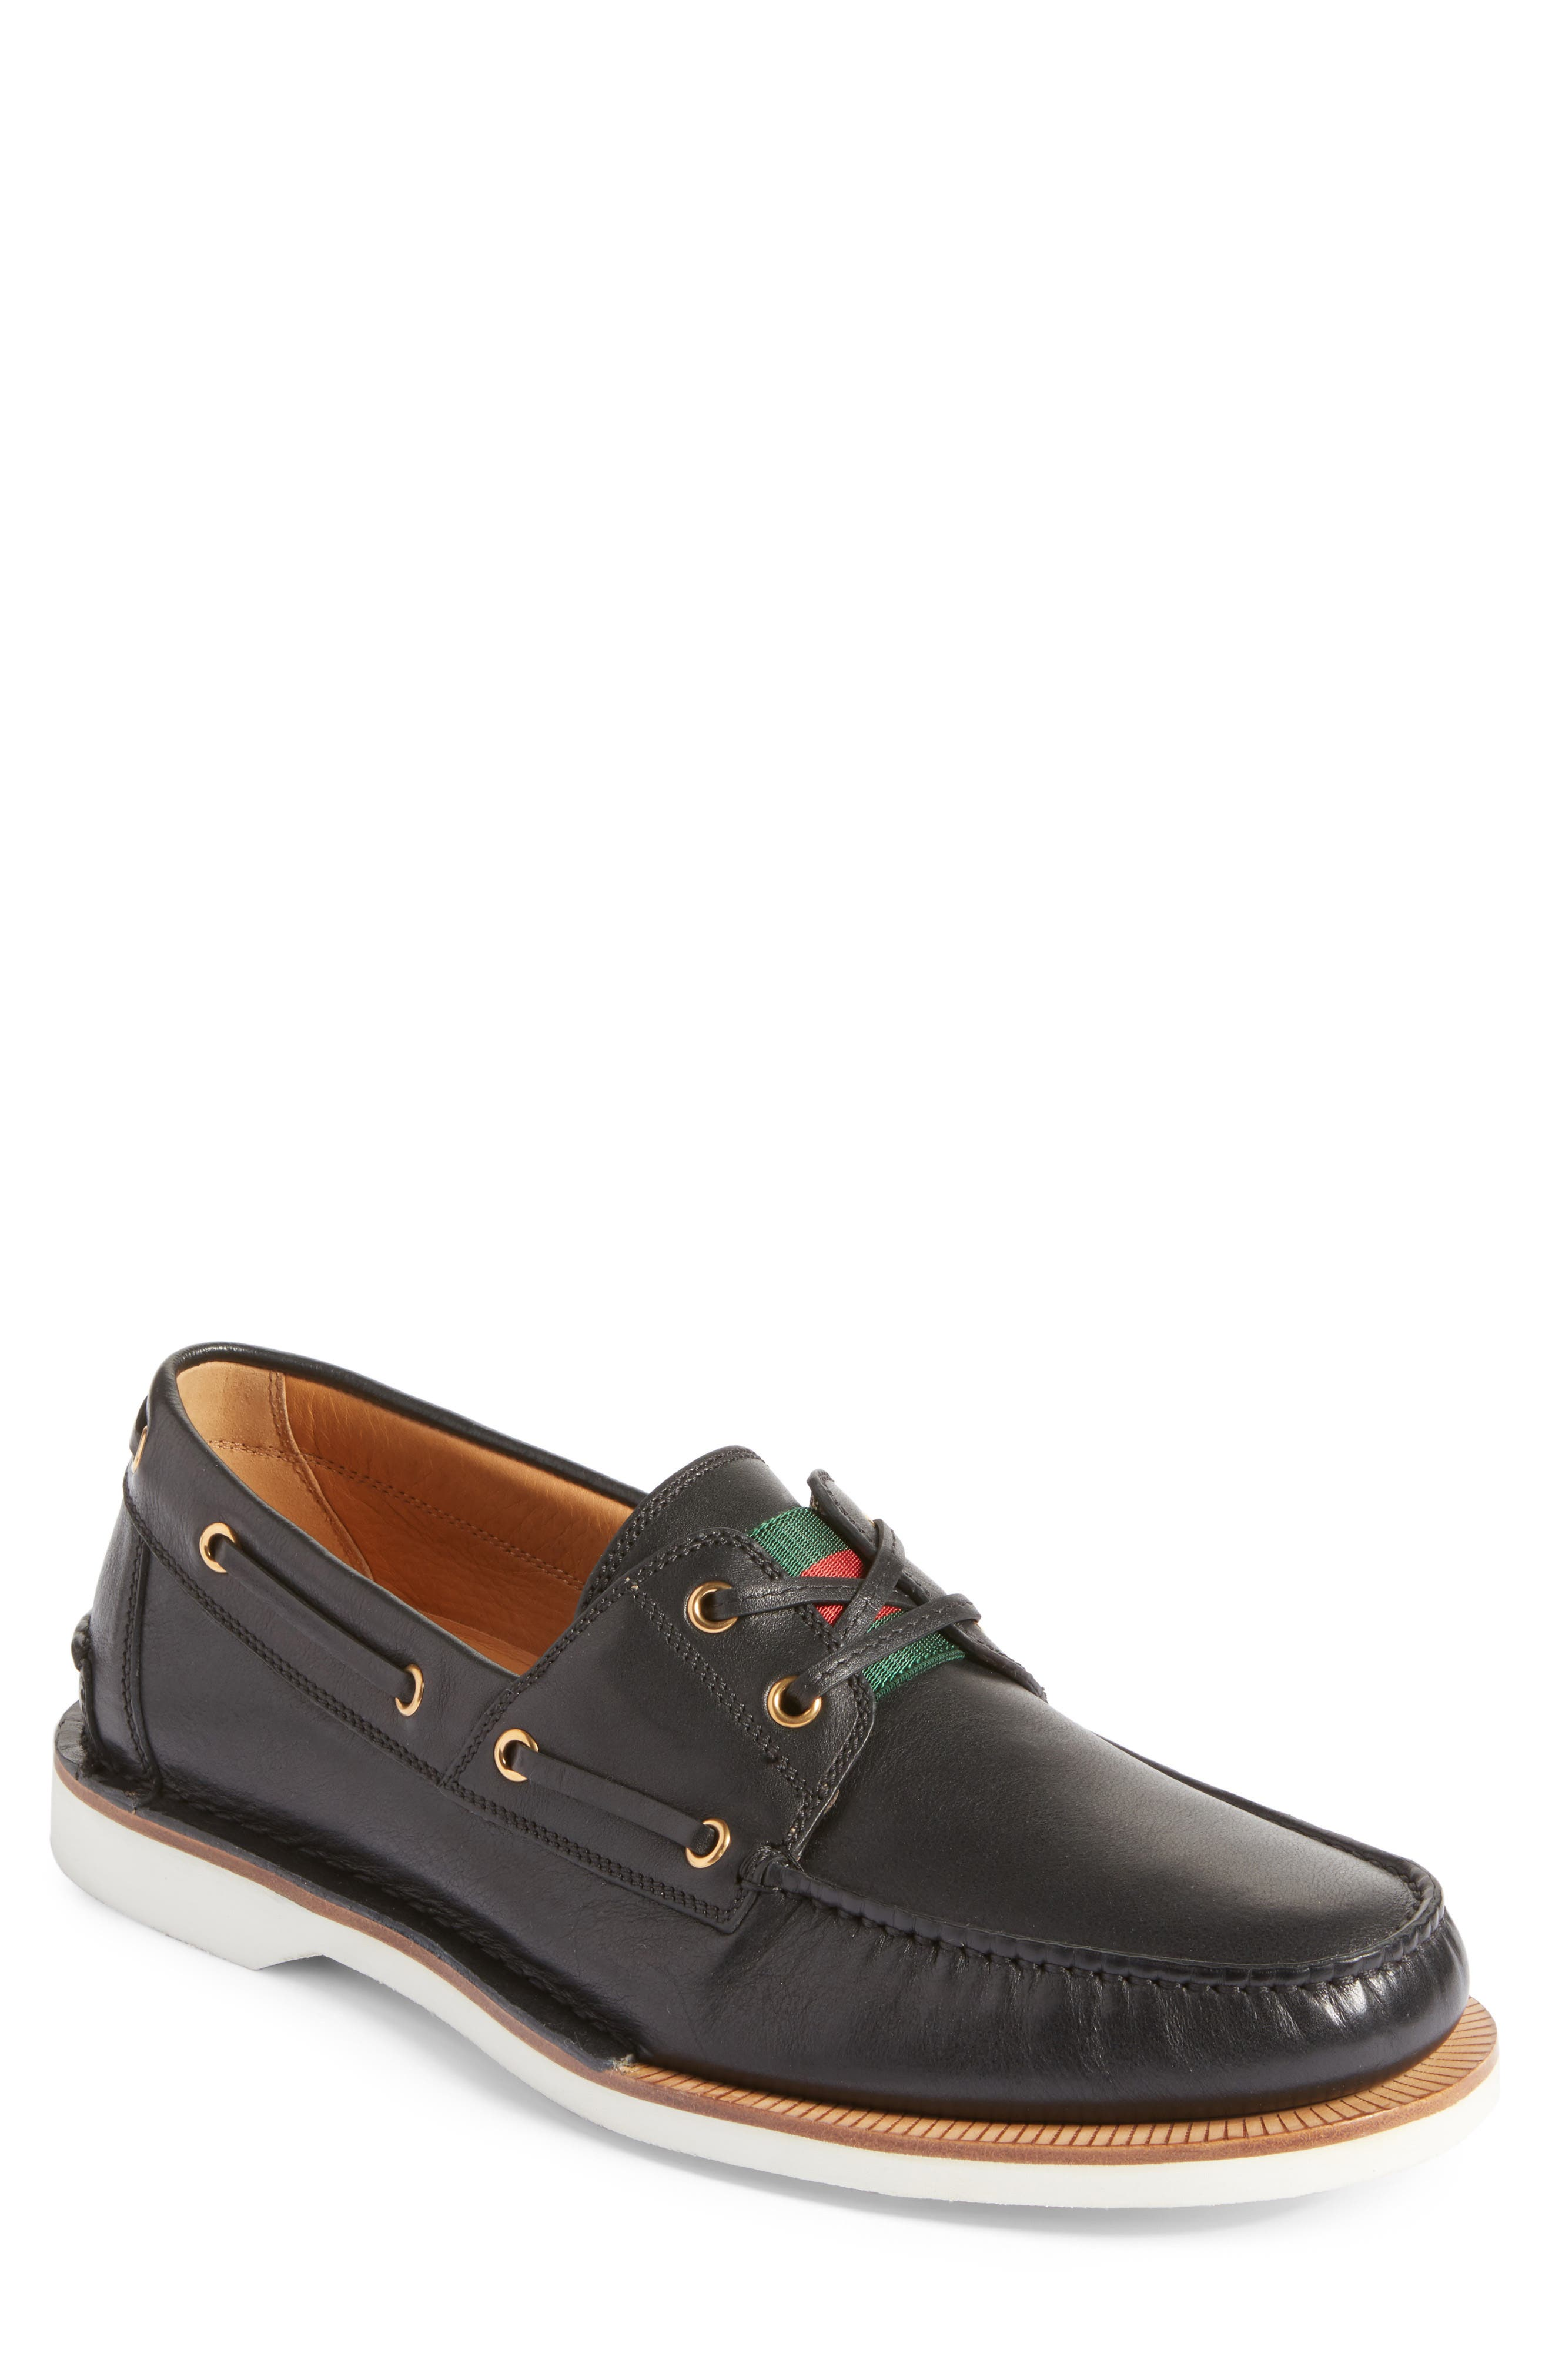 Delta Boat Loafer,                             Main thumbnail 1, color,                             009